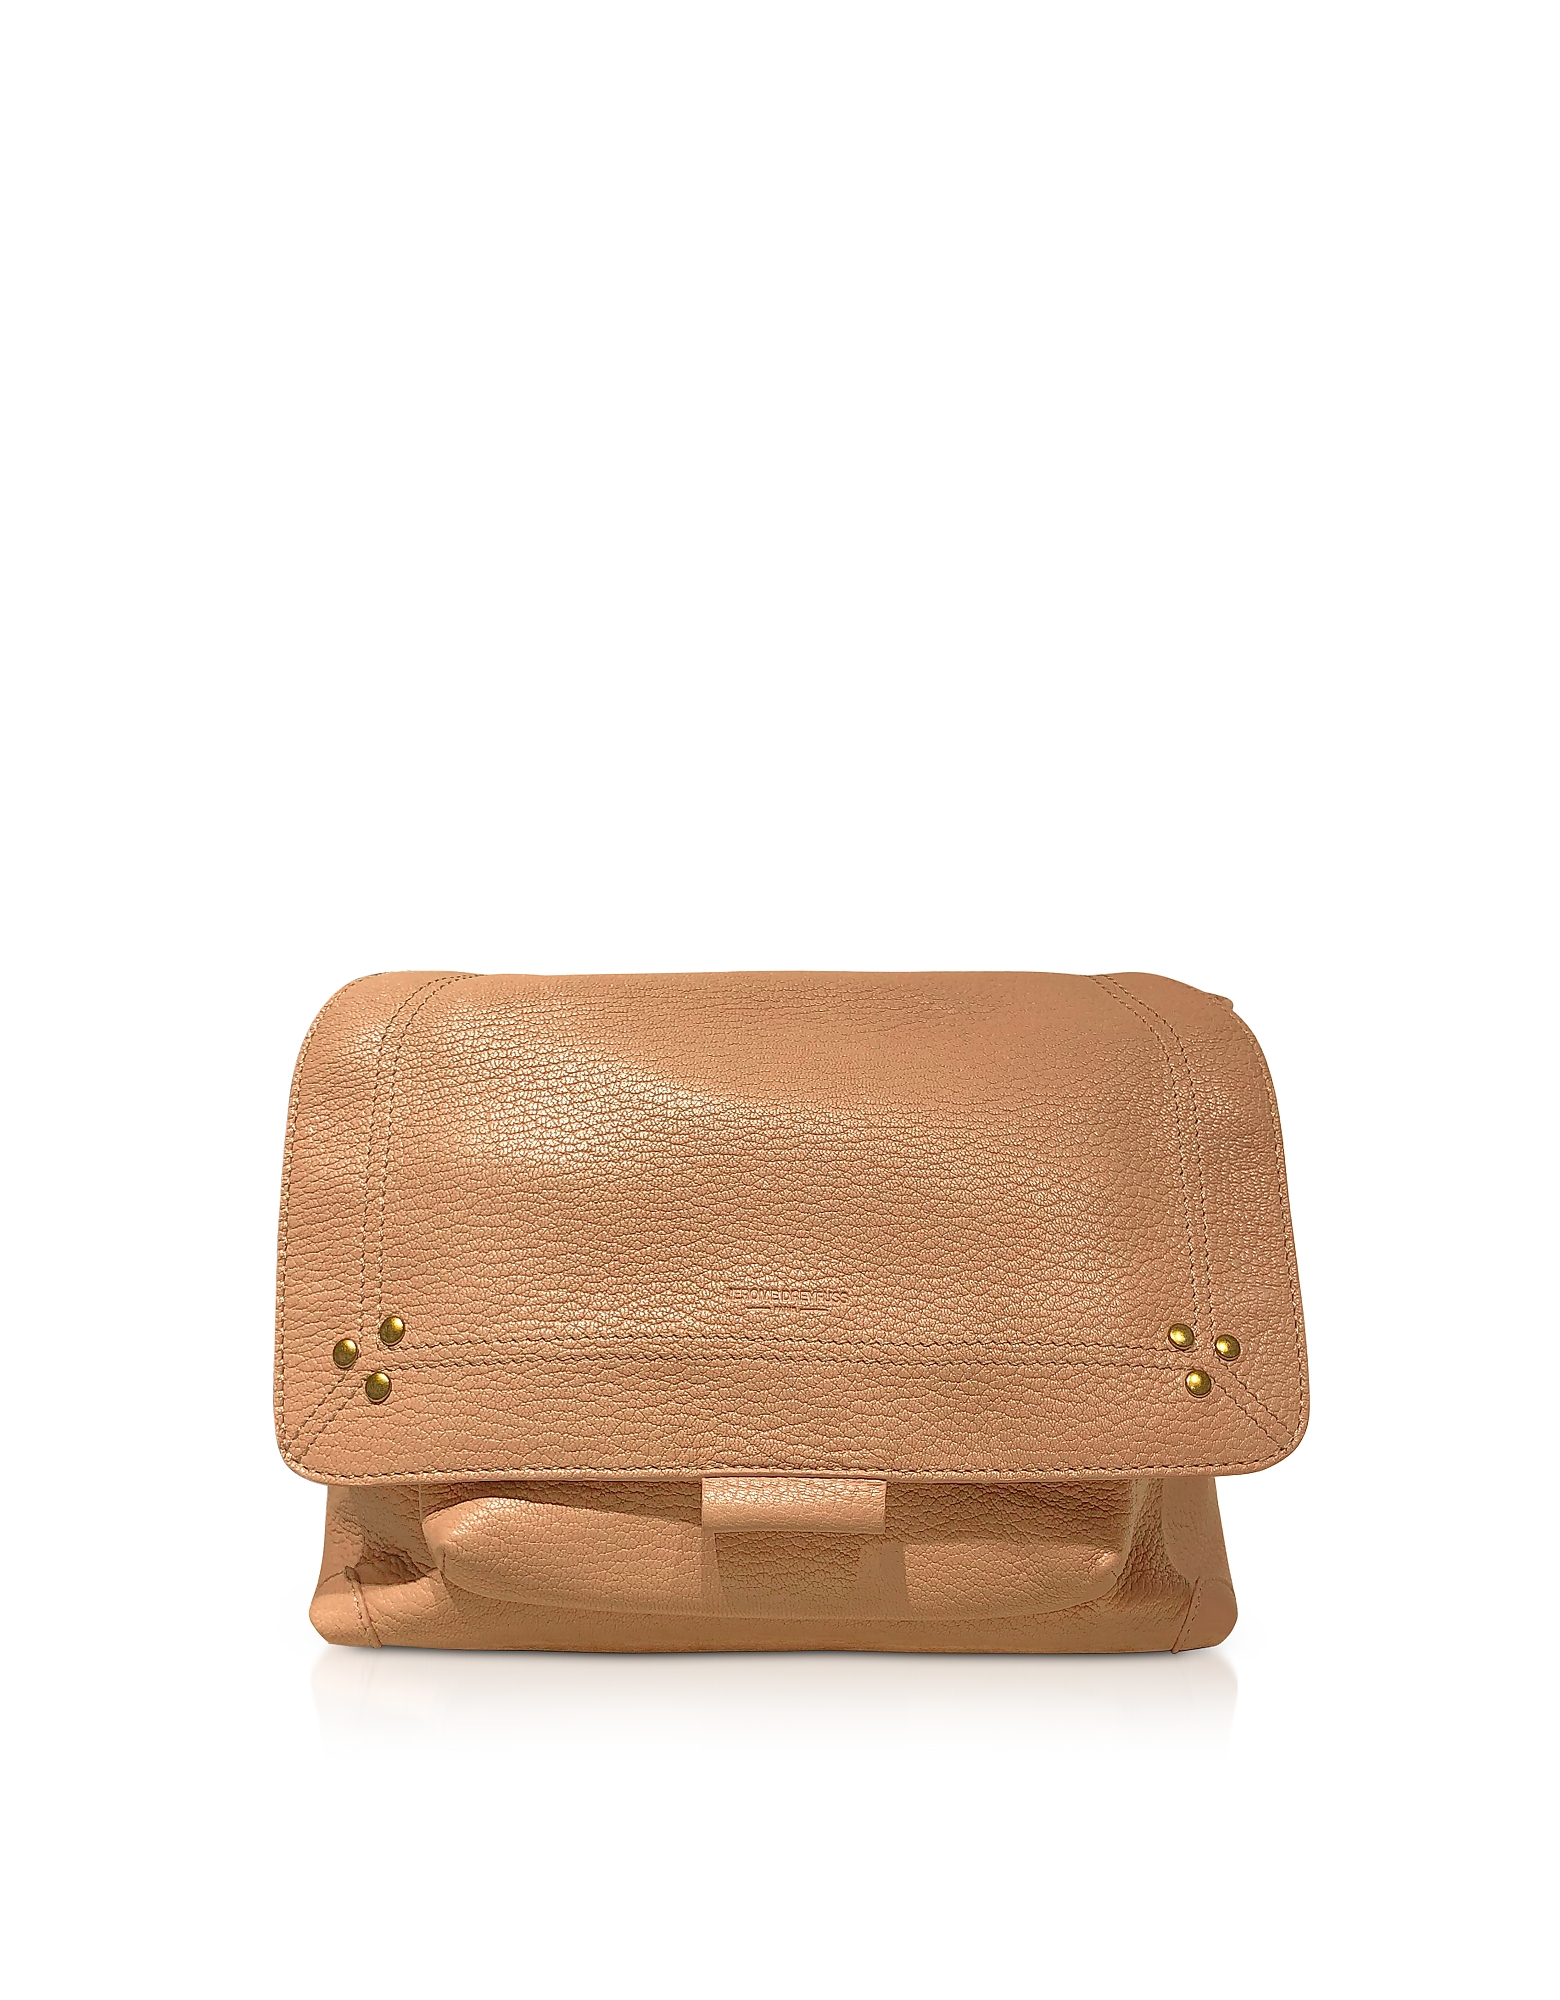 Lulu M Rose Leather Shoulder Bag